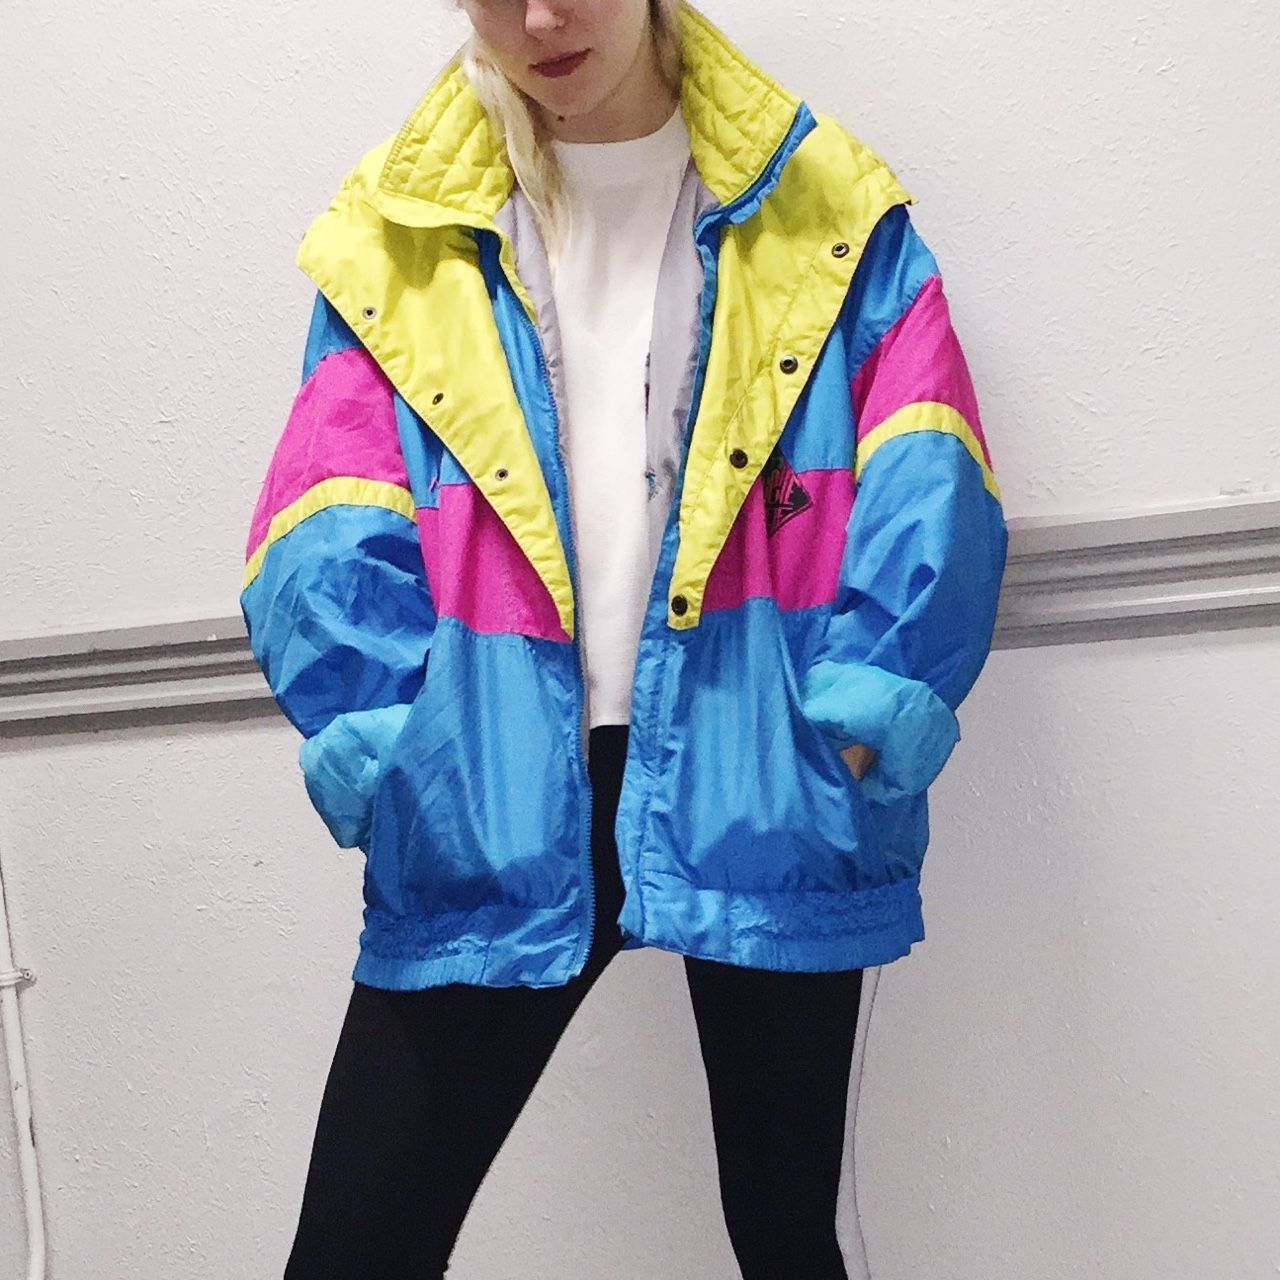 7efa00fbd3 The color block ski jacket Classic 80s 90s vibe. The bright colors are  killer. Great condition! Pair with any old baggy jeans and a crop. Size is  flexible!